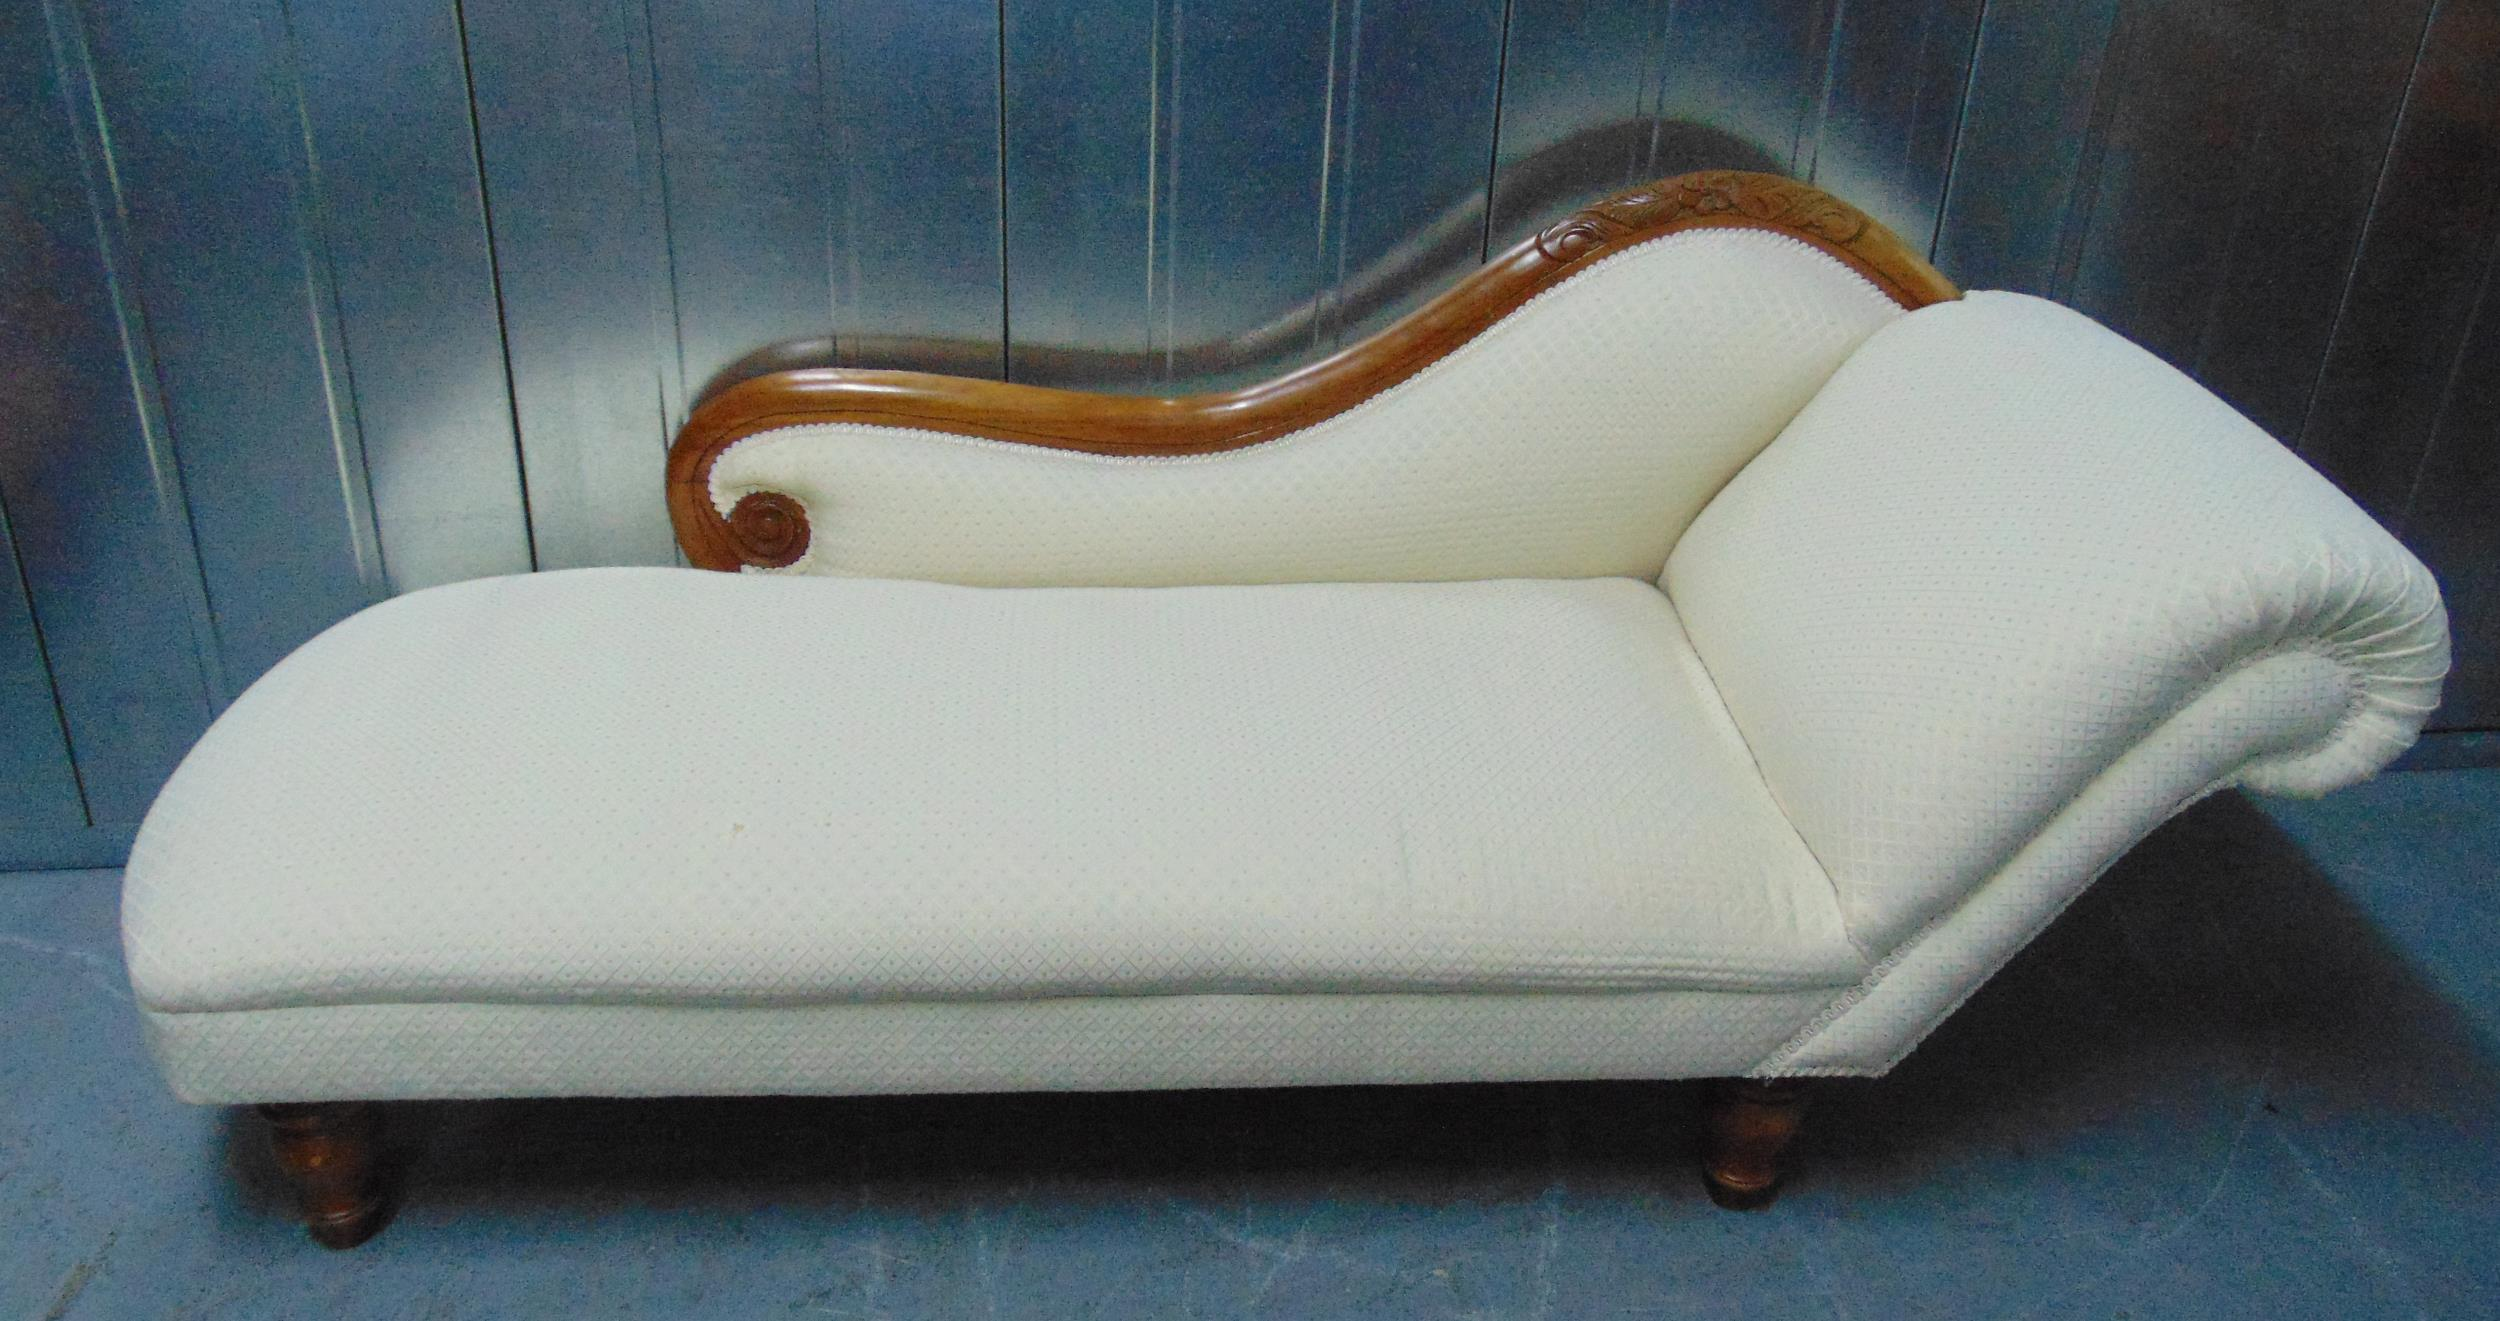 A Victorian mahogany chaise longue on four turned wooden supports, 166 x 62cm